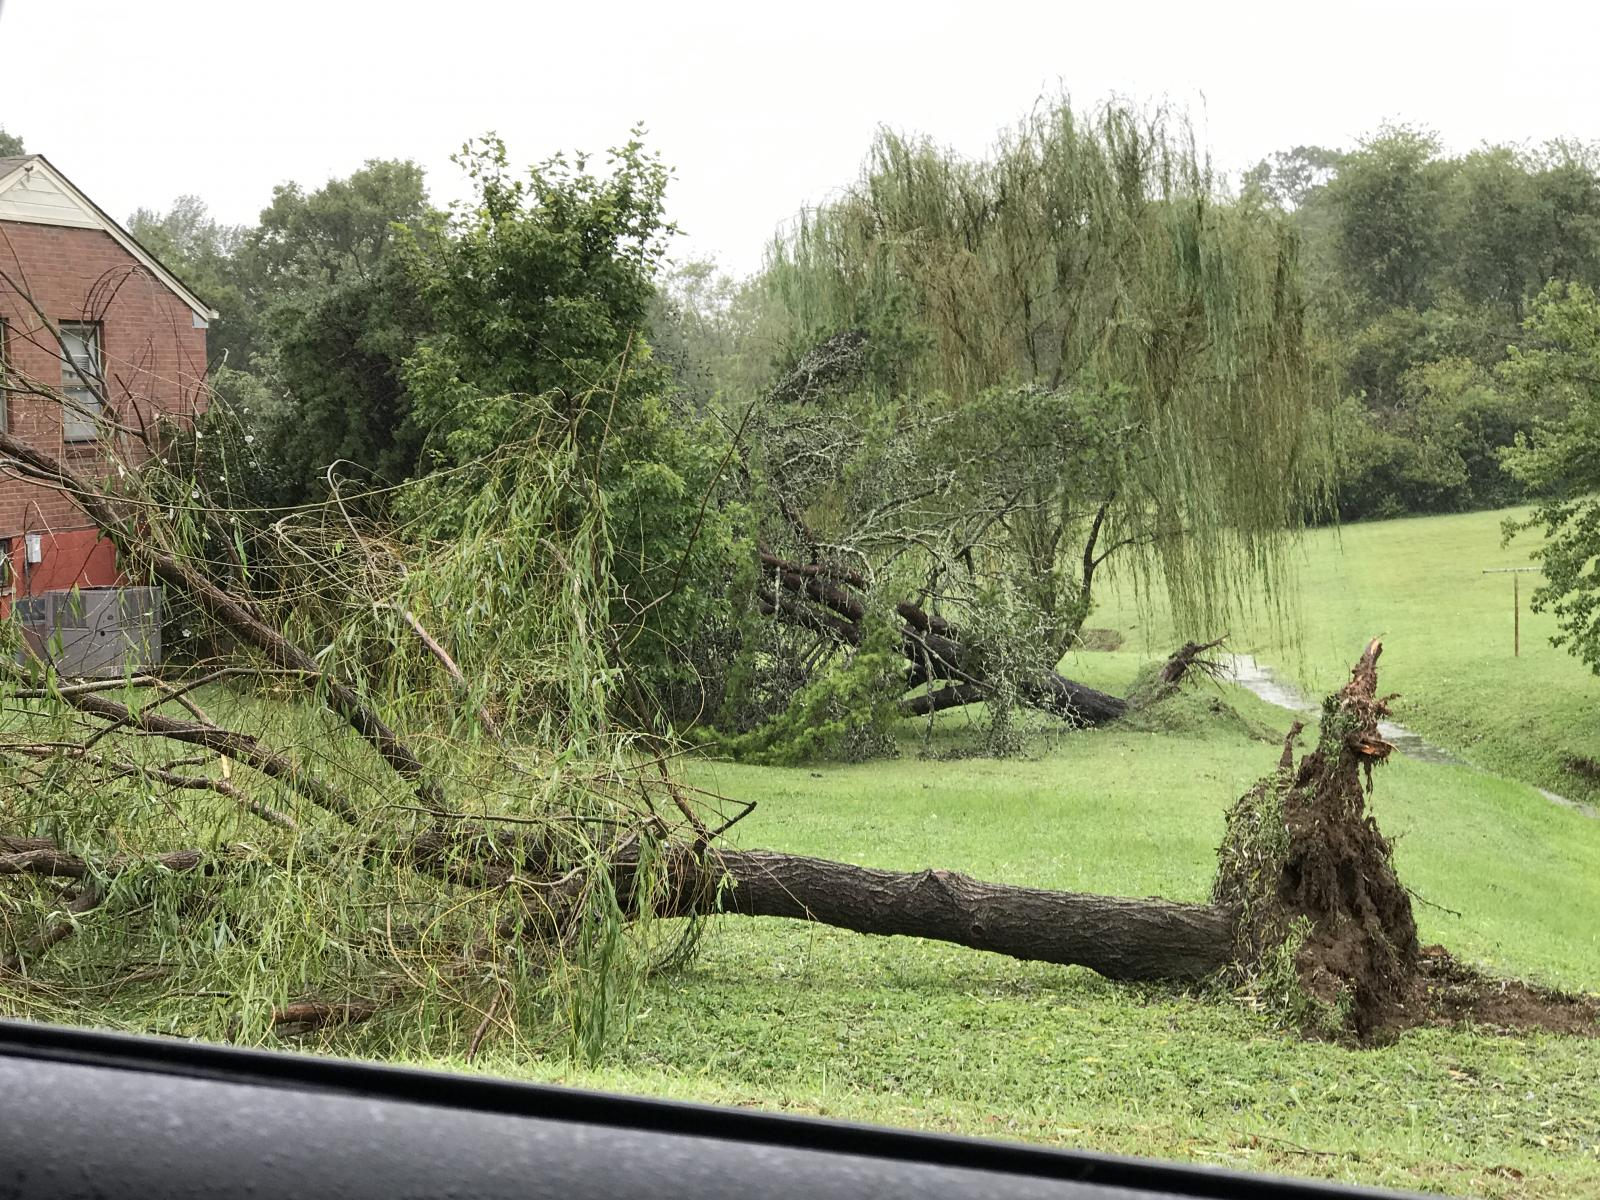 Donelson damage